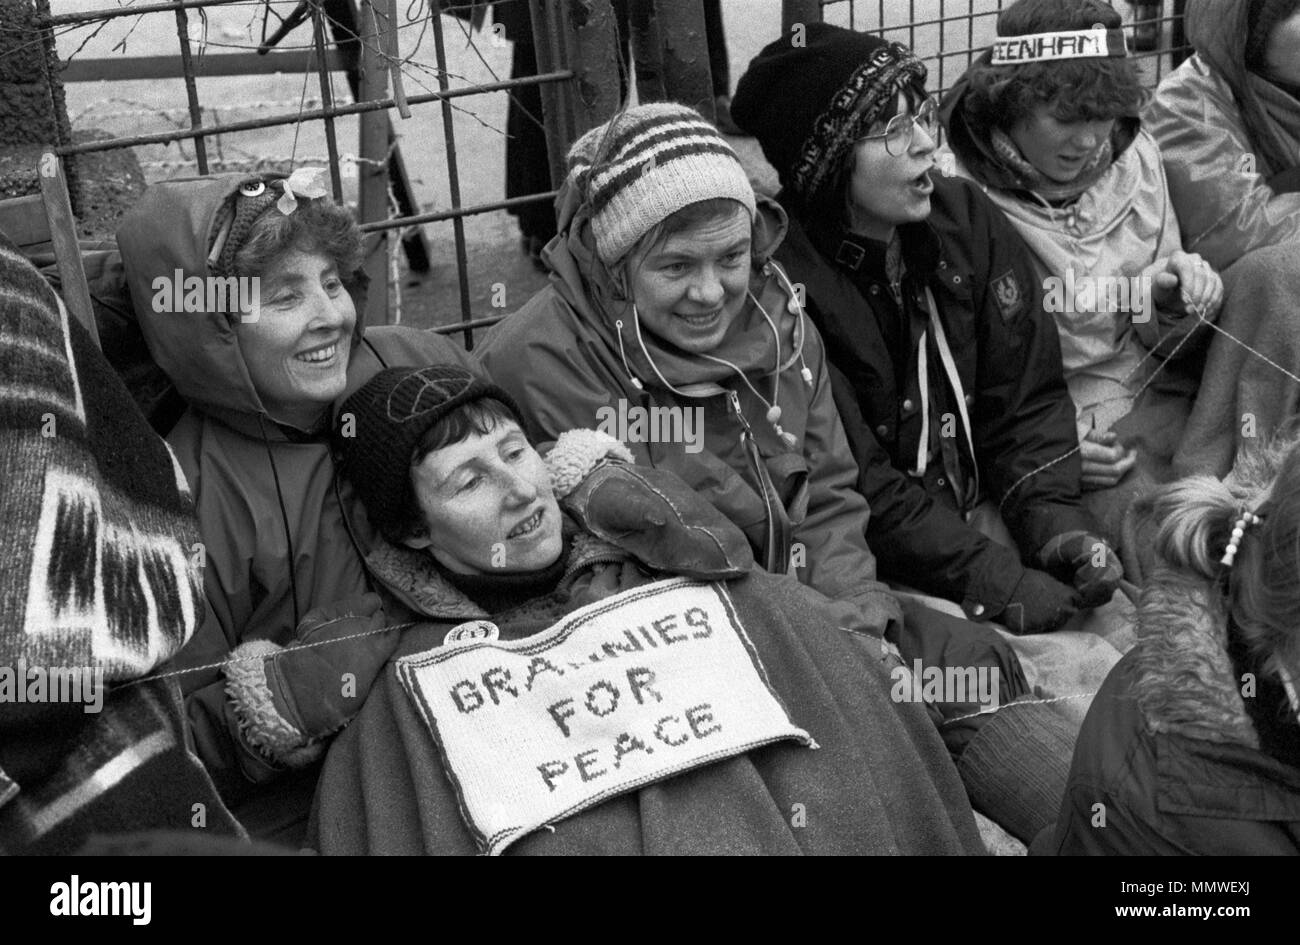 Greenham Common Womens Peace Camp. Grannies for Peace, older women sit down protest 1985, 1980s UK HOMER SYKES Stock Photo